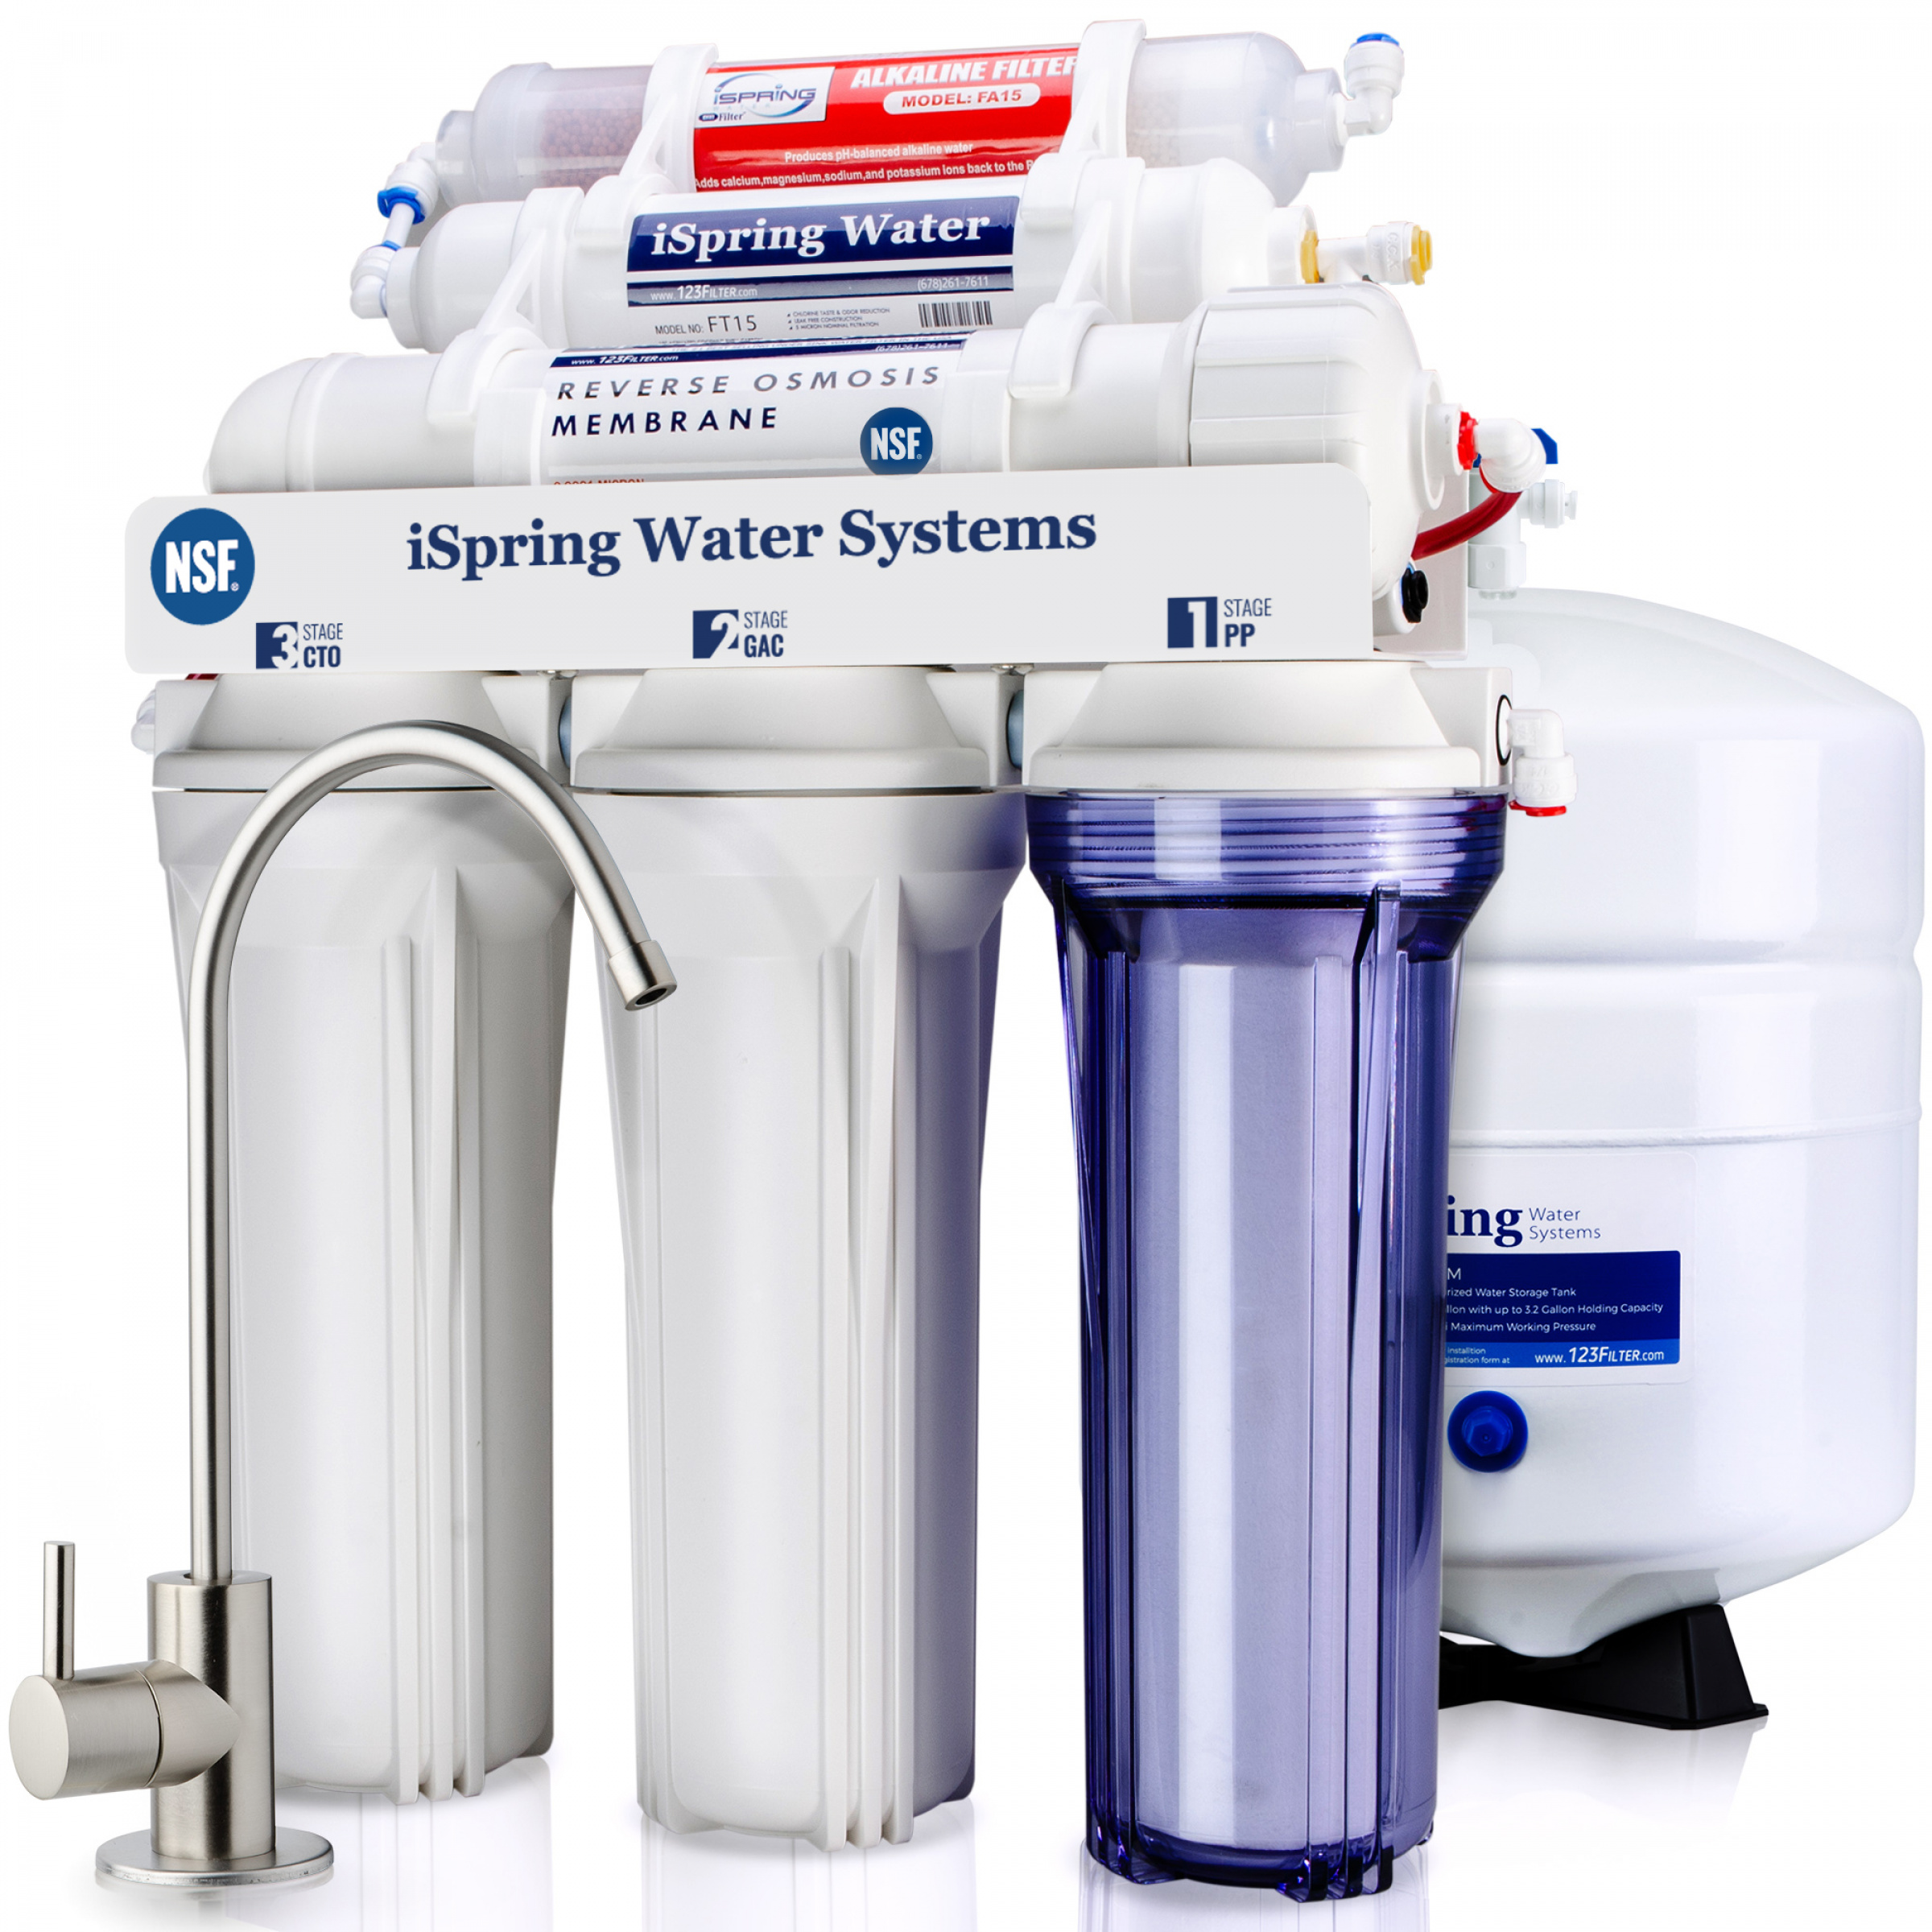 Reverse Osmosis 3 Stage Ro Unit Replacement Pre Filters Including Membrane 75gpd Fish & Aquariums